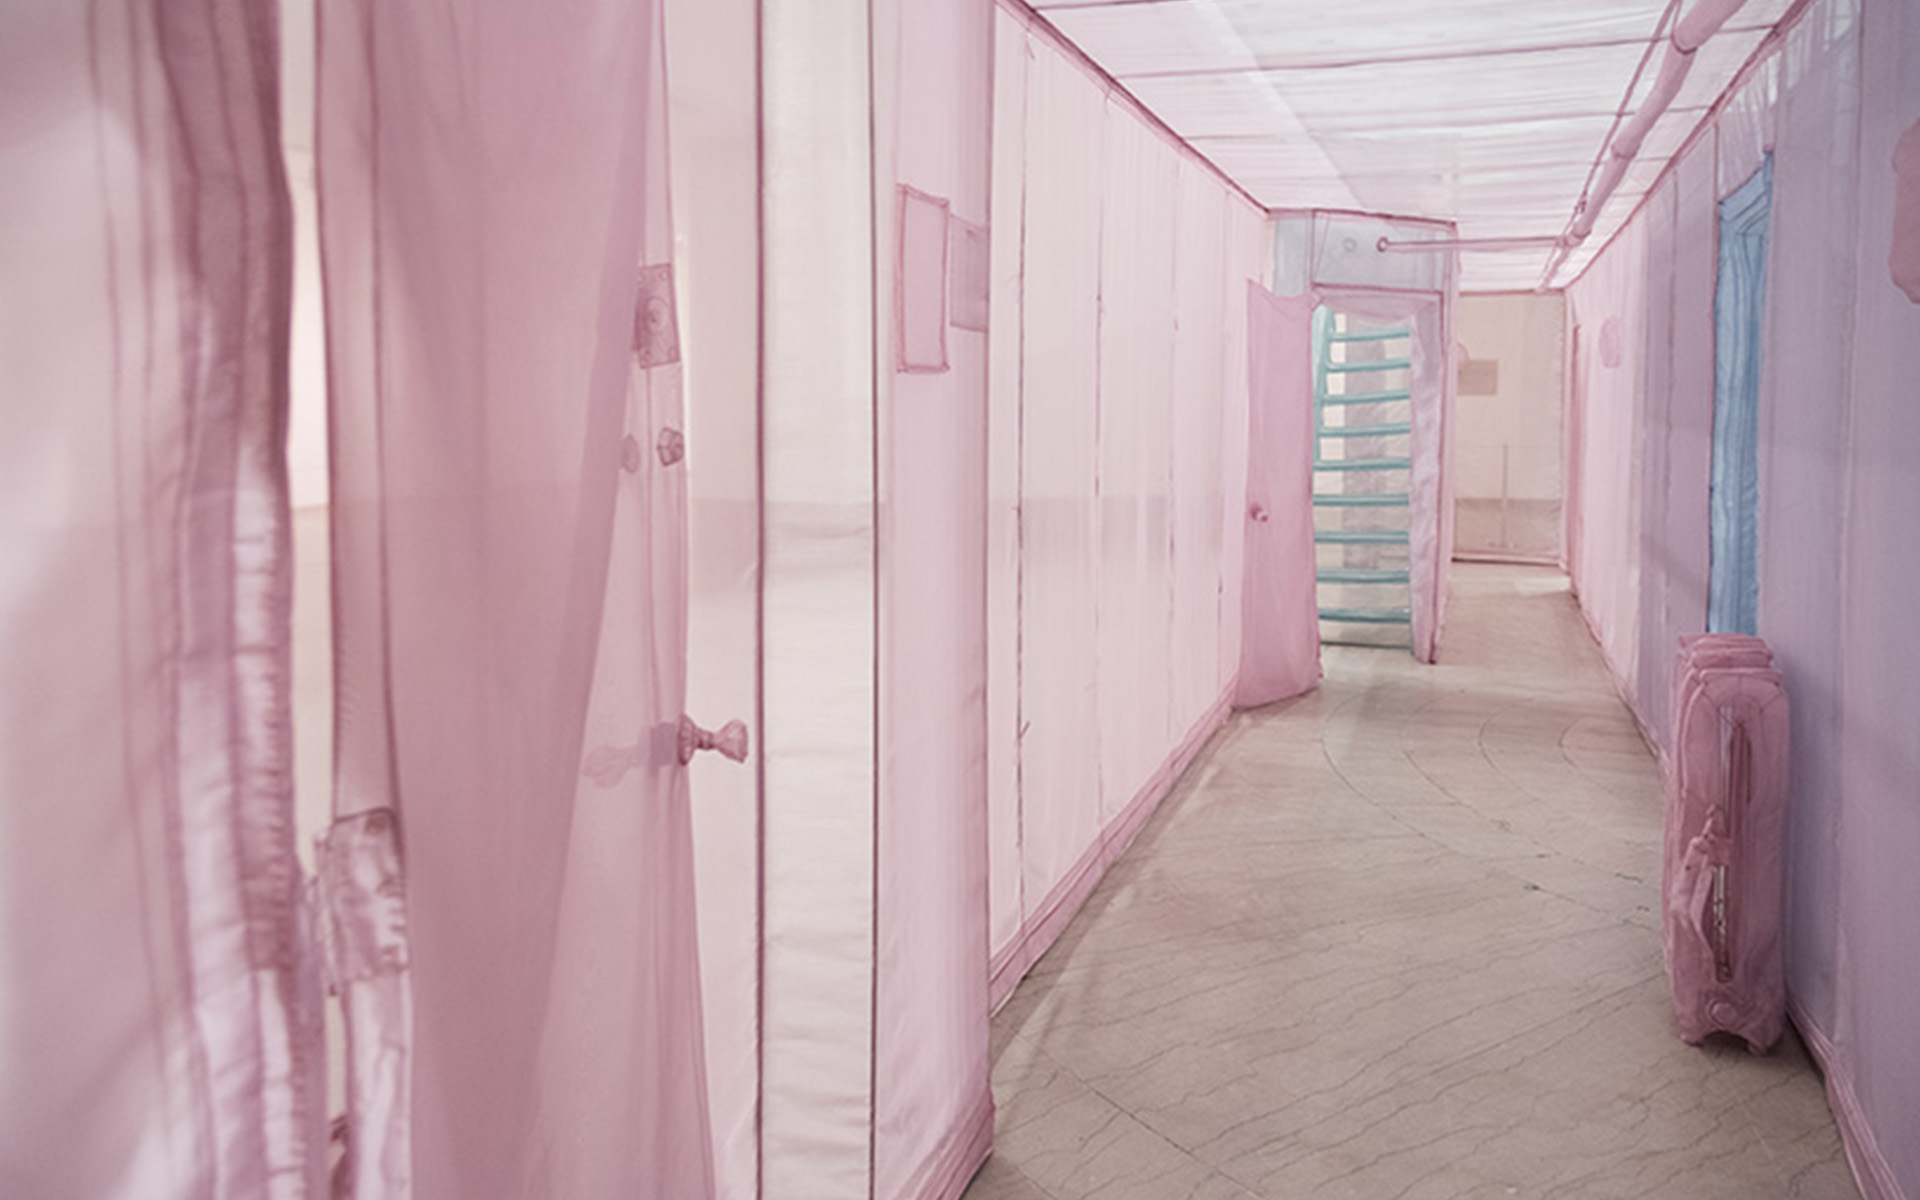 A full-scale fabric replica of Do Ho Suh's New York apartment